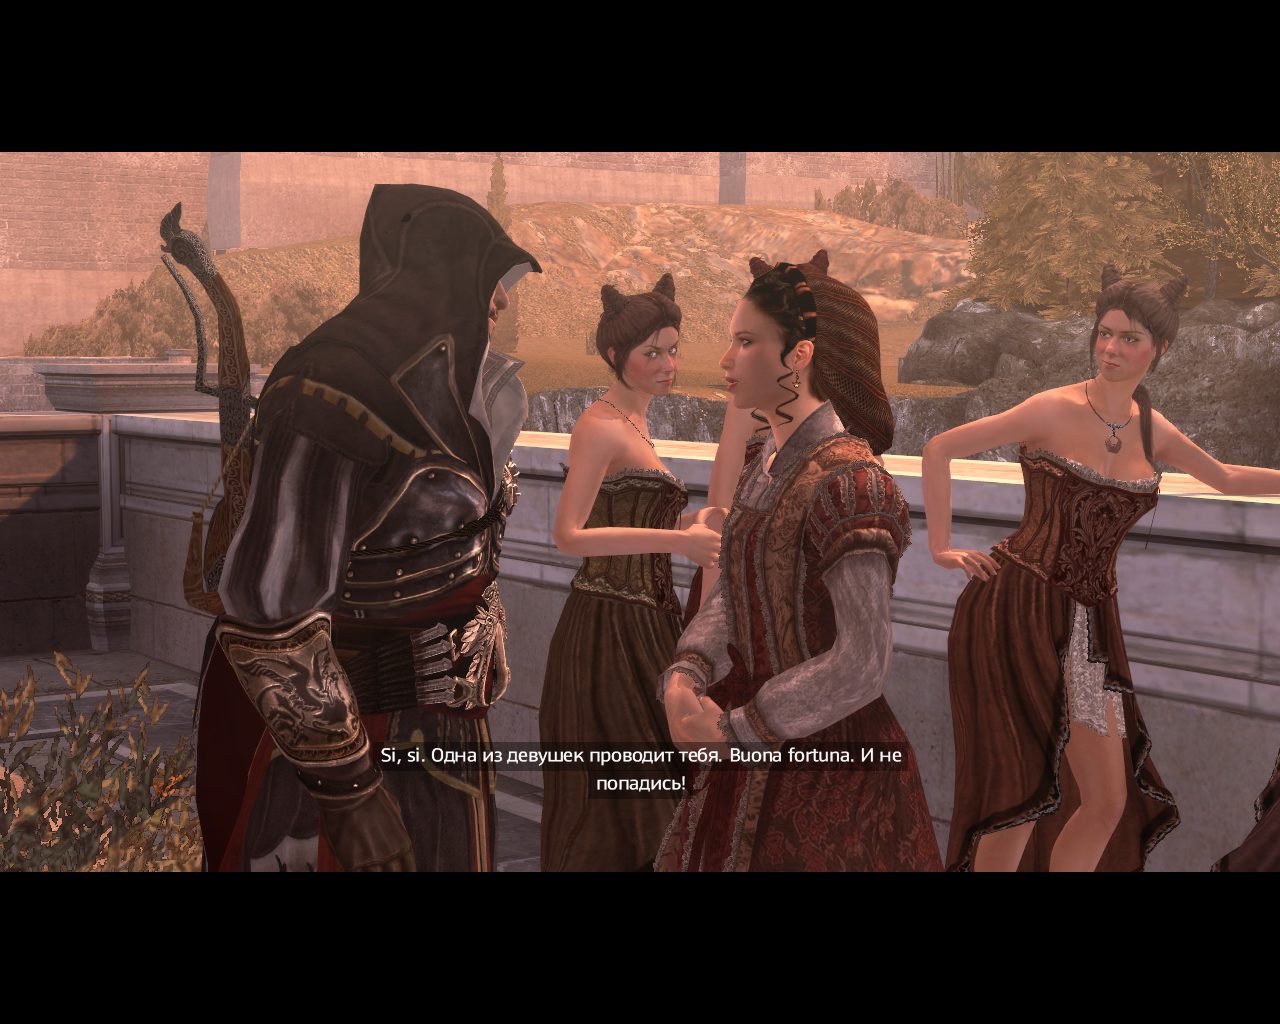 Assassin's Creed: Brotherhood Windows Ezio's sister now holds a brothel